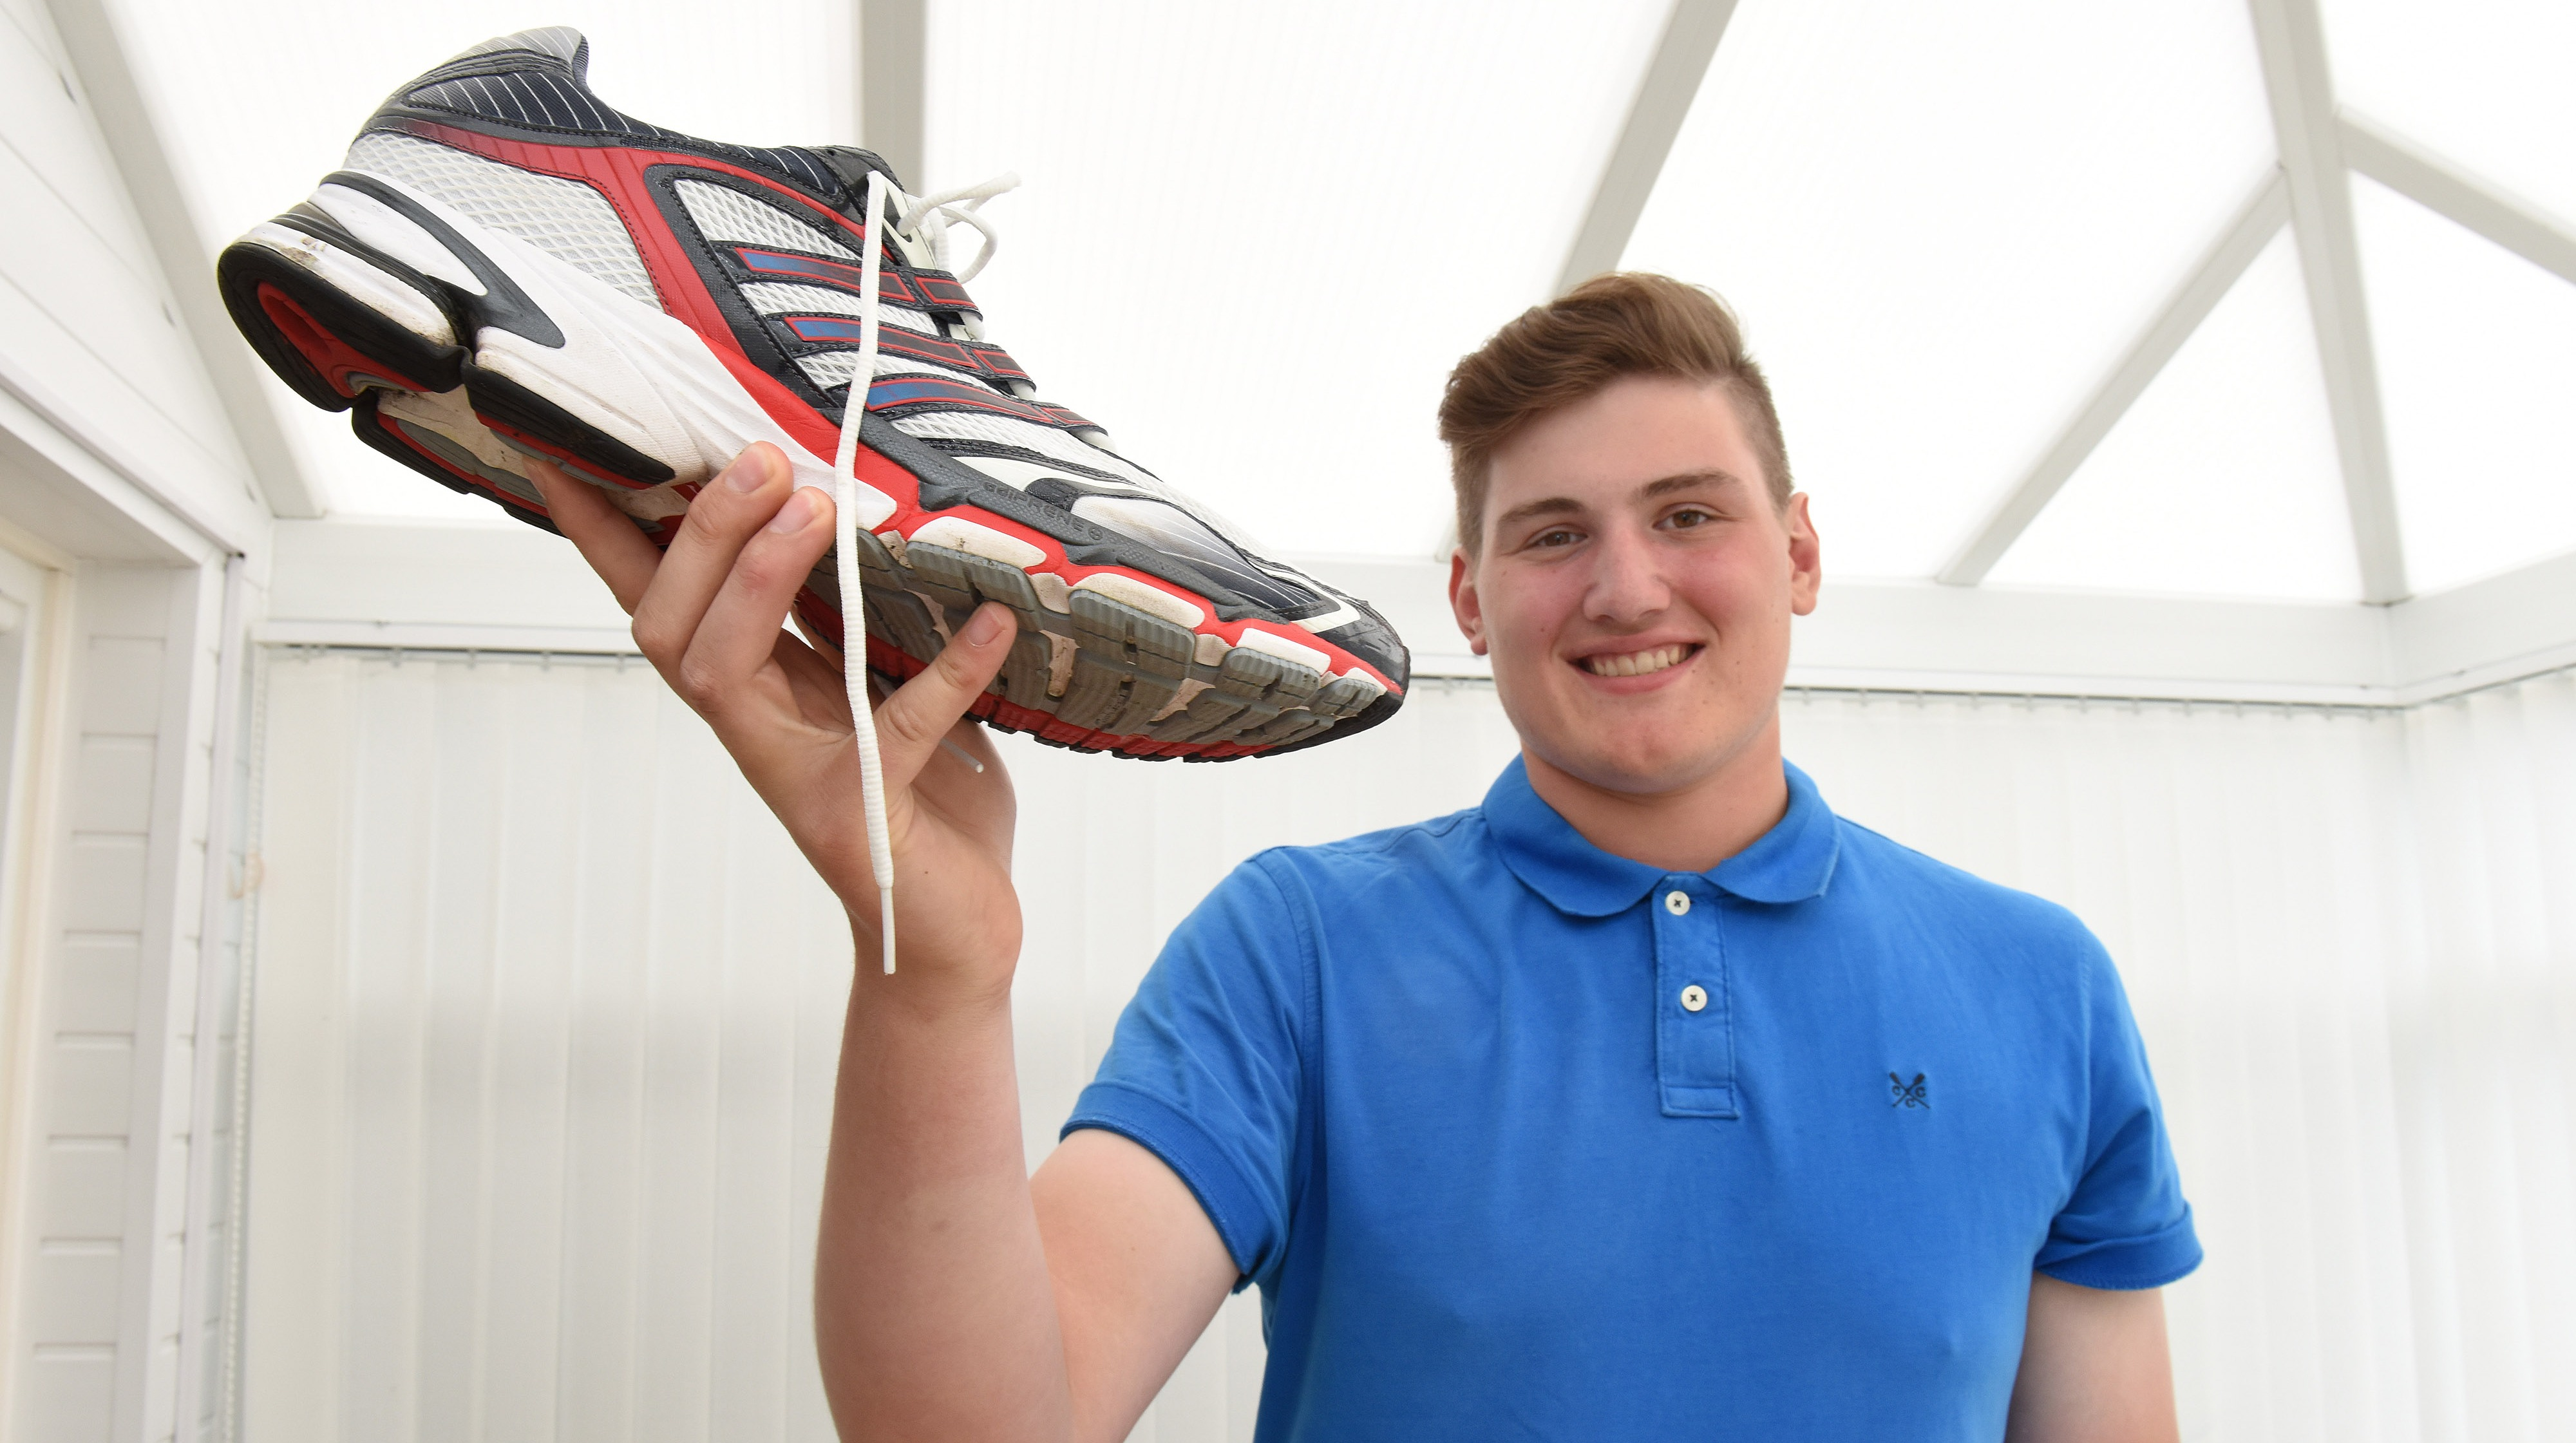 Average Shoe Size For A Teenager